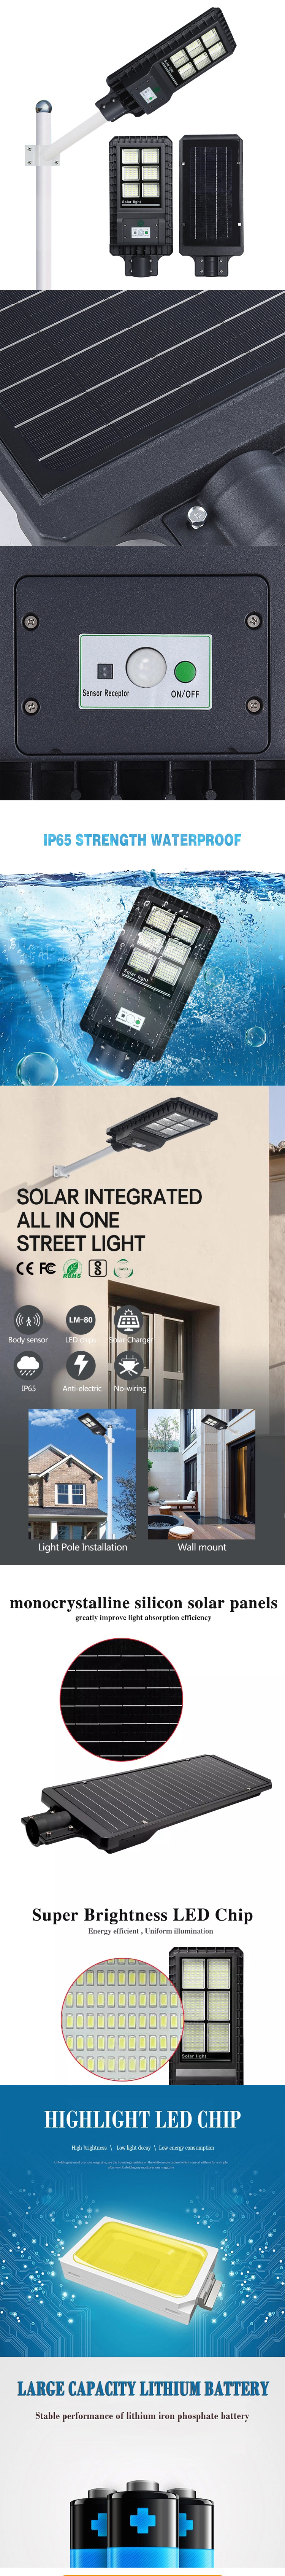 EPES180W Integrated Solar Led Street Light